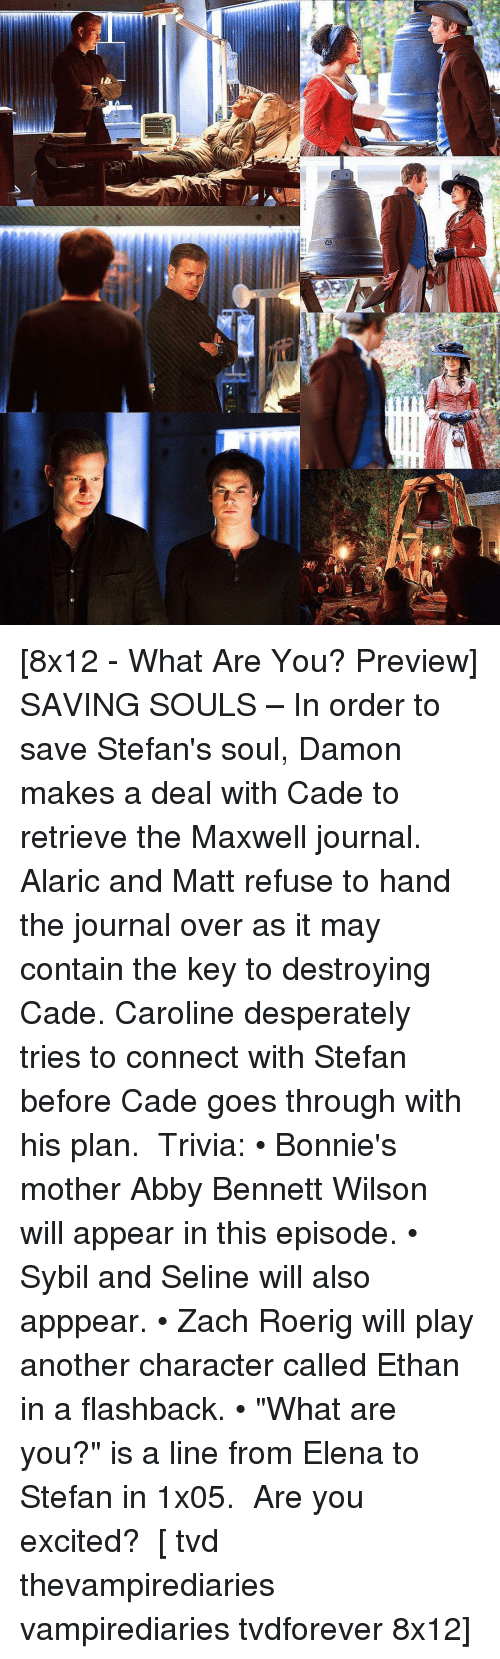 """abbi: In [8x12 - What Are You? Preview] SAVING SOULS – In order to save Stefan's soul, Damon makes a deal with Cade to retrieve the Maxwell journal. Alaric and Matt refuse to hand the journal over as it may contain the key to destroying Cade. Caroline desperately tries to connect with Stefan before Cade goes through with his plan. ⠀ Trivia: • Bonnie's mother Abby Bennett Wilson will appear in this episode. • Sybil and Seline will also apppear. • Zach Roerig will play another character called Ethan in a flashback. • """"What are you?"""" is a line from Elena to Stefan in 1x05. ⠀ Are you excited? ⠀ [ tvd thevampirediaries vampirediaries tvdforever 8x12]"""